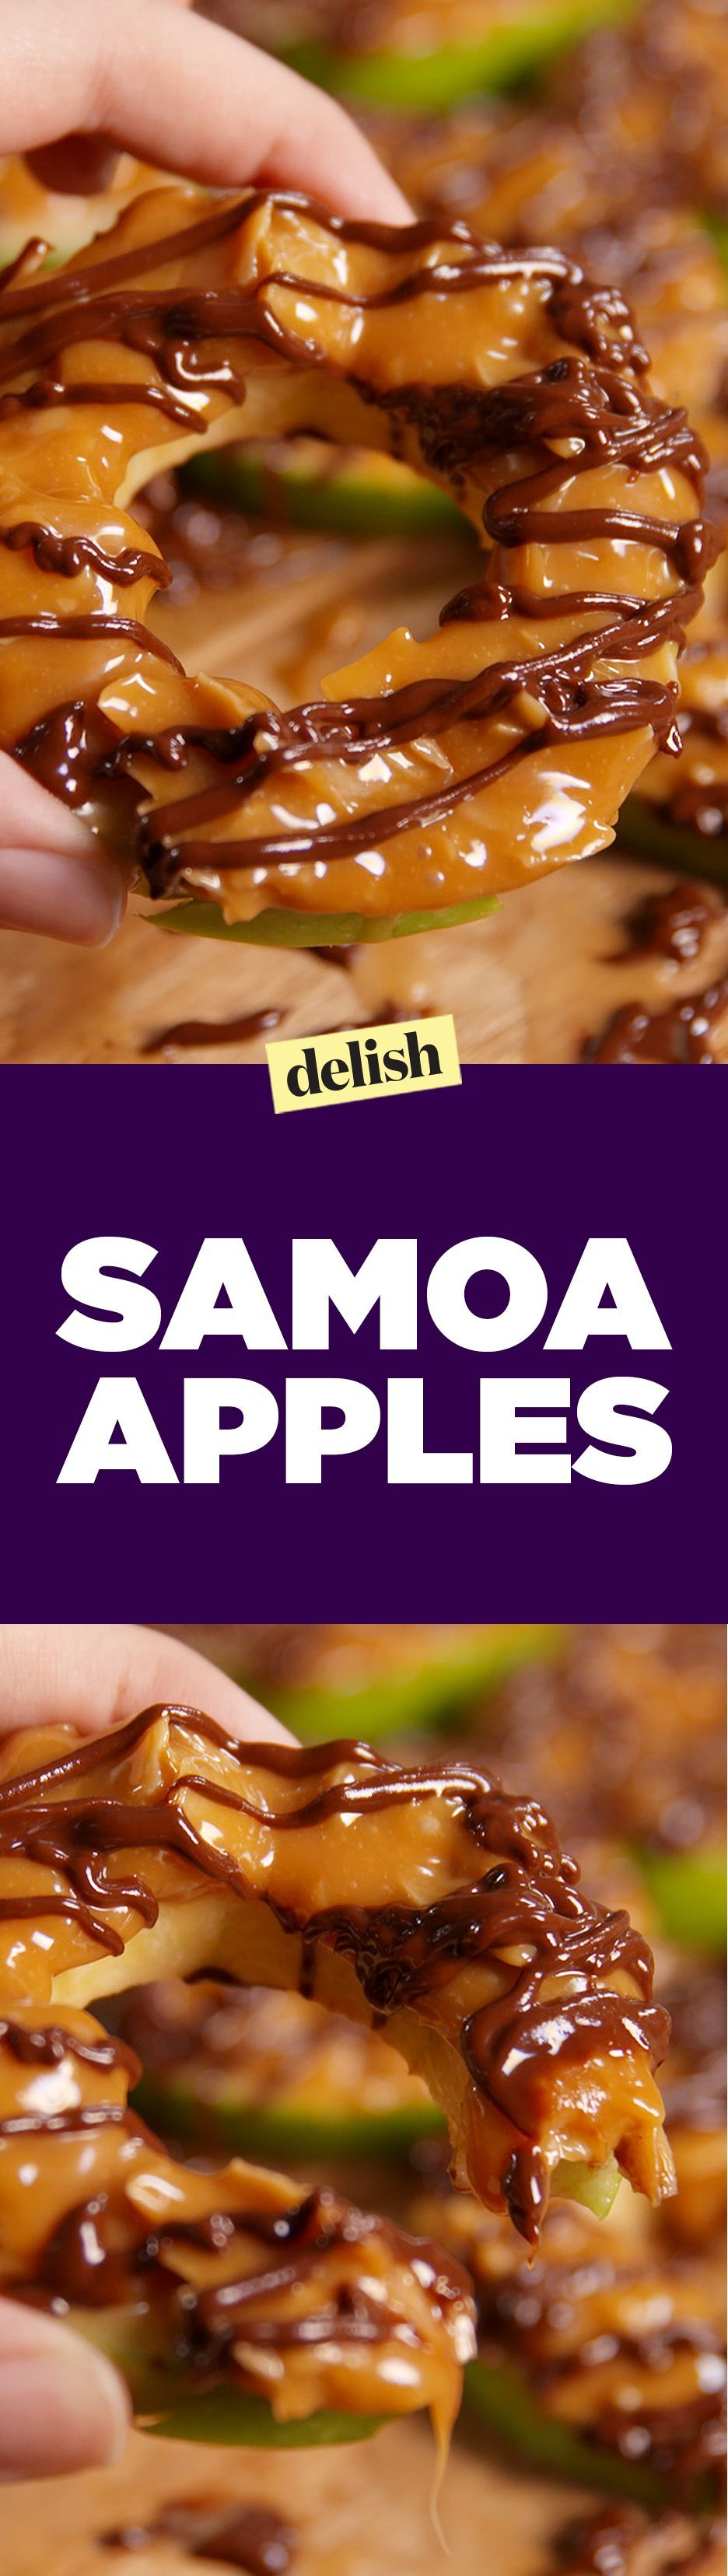 Samoa Apples Are The Low-Carb Version Of Your Favorite Girl Scout CookieDelish